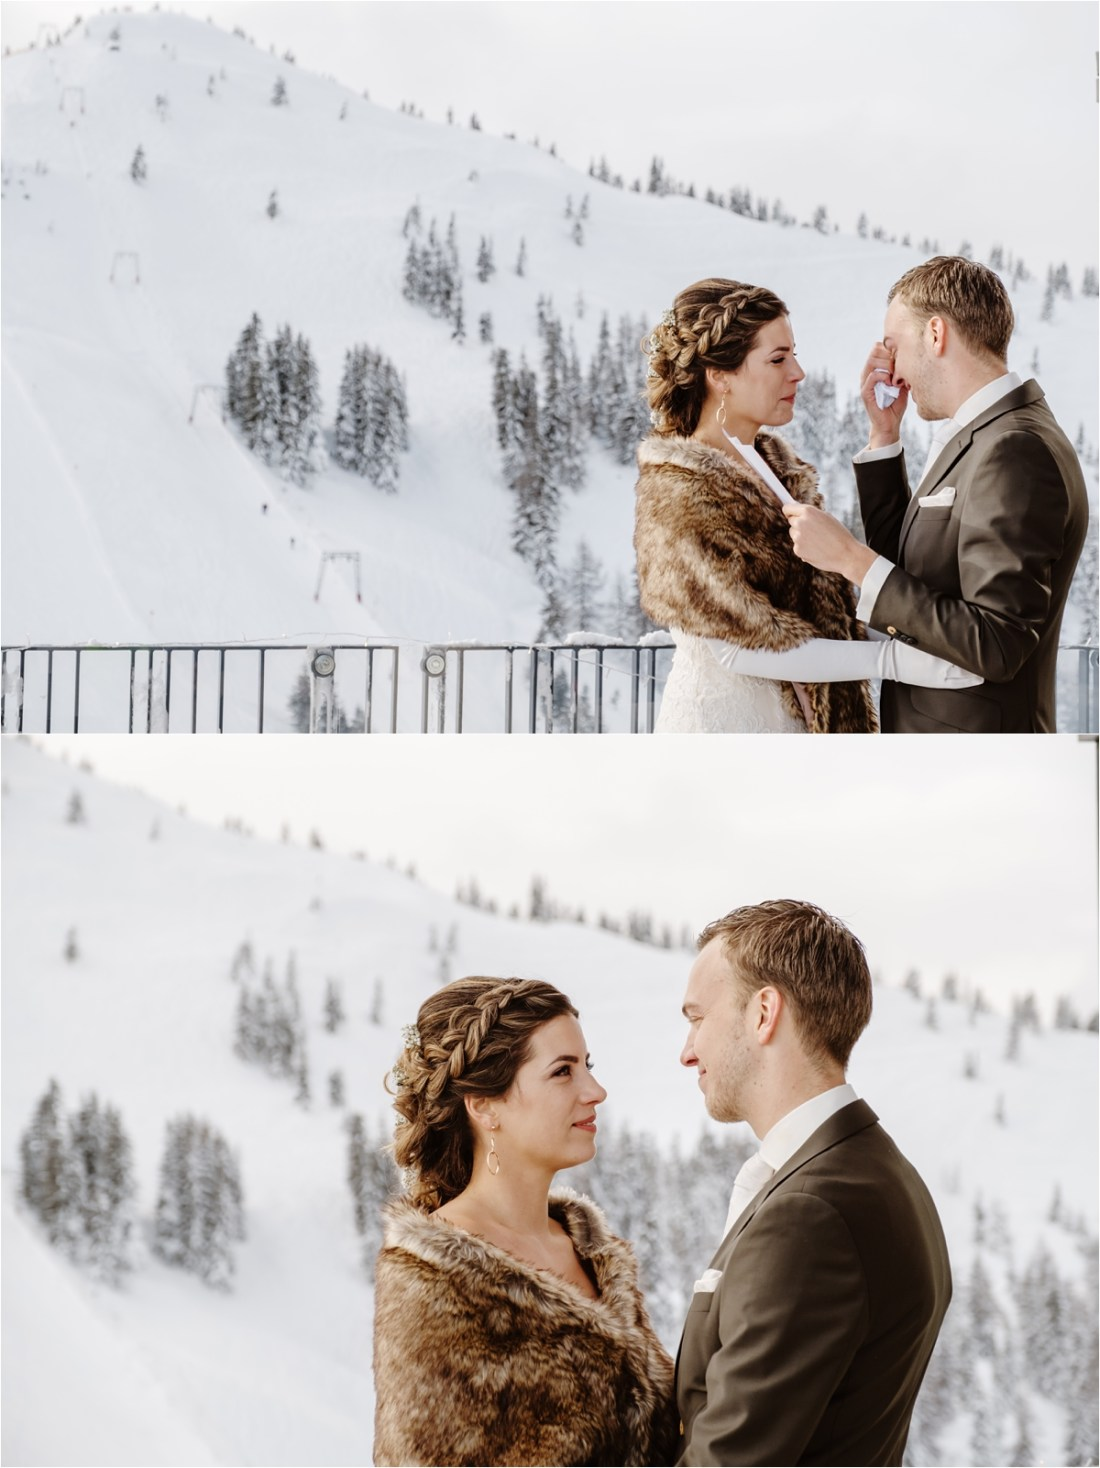 The groom breaks down in tears whilst reading his vows at his winter wedding ceremony in Austria by Wild Connections Photography